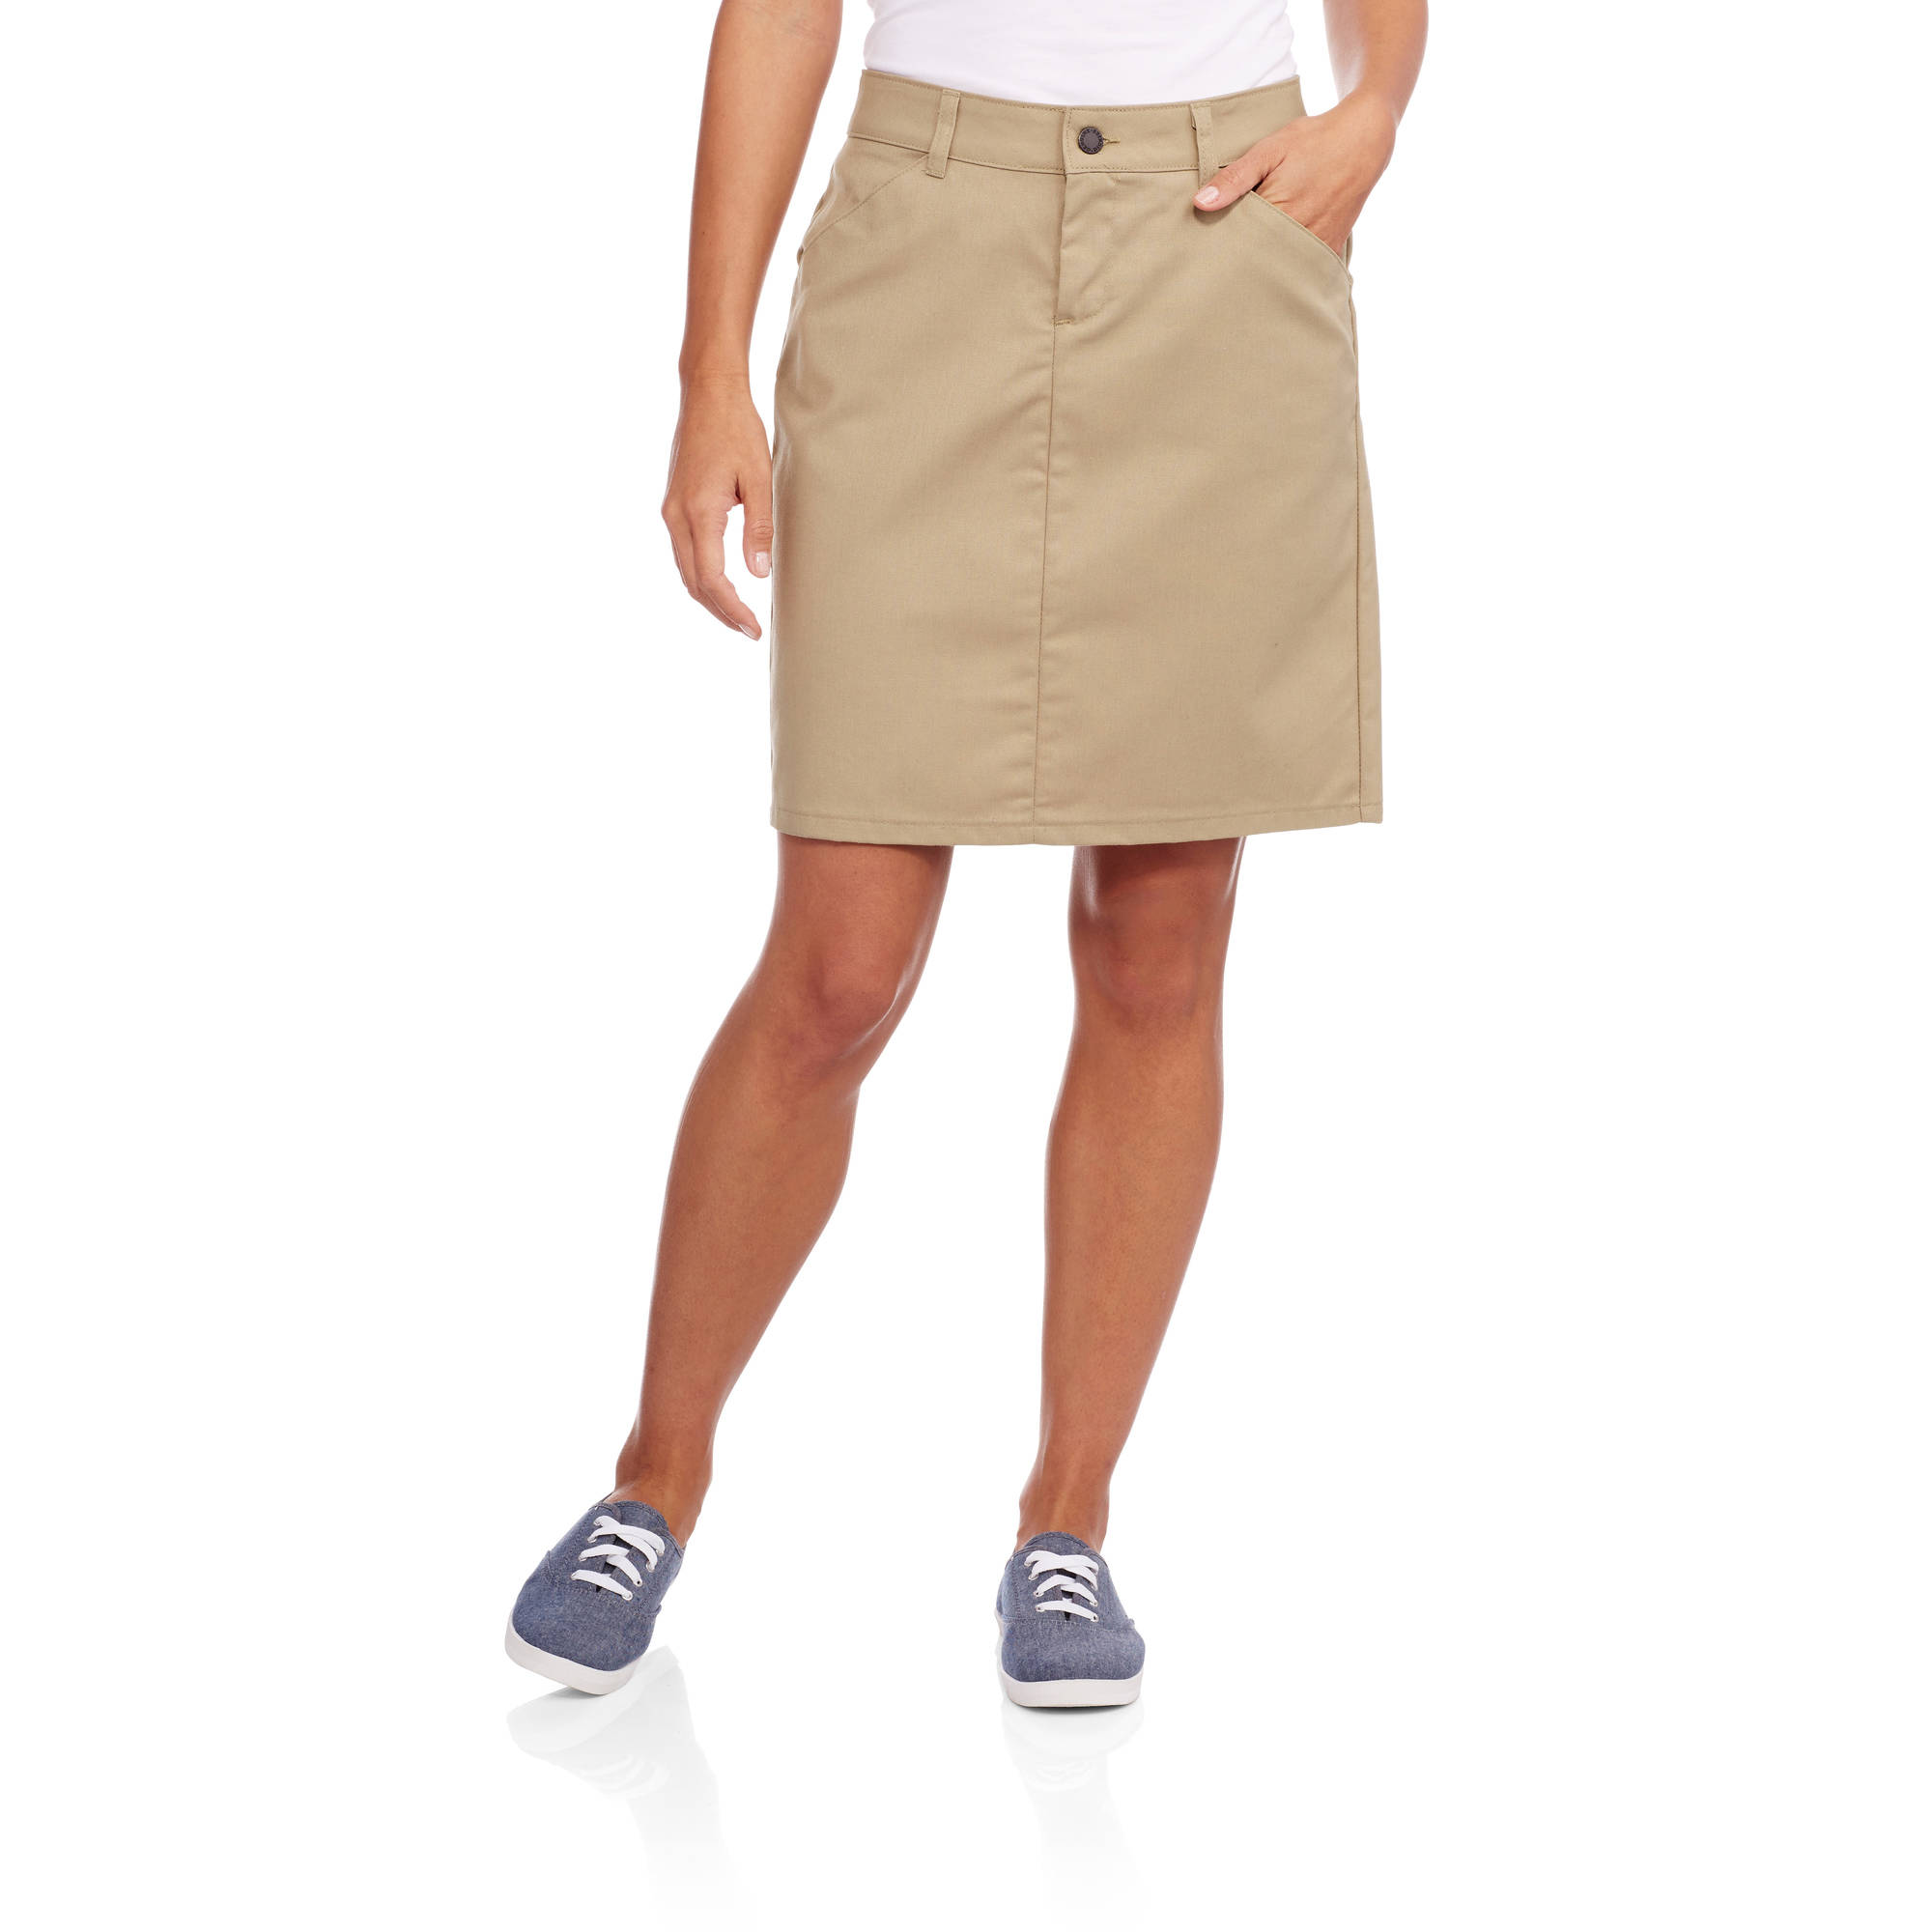 Genuine Dickies Women's Button Front Blended Twill Skirt - Walmart.com